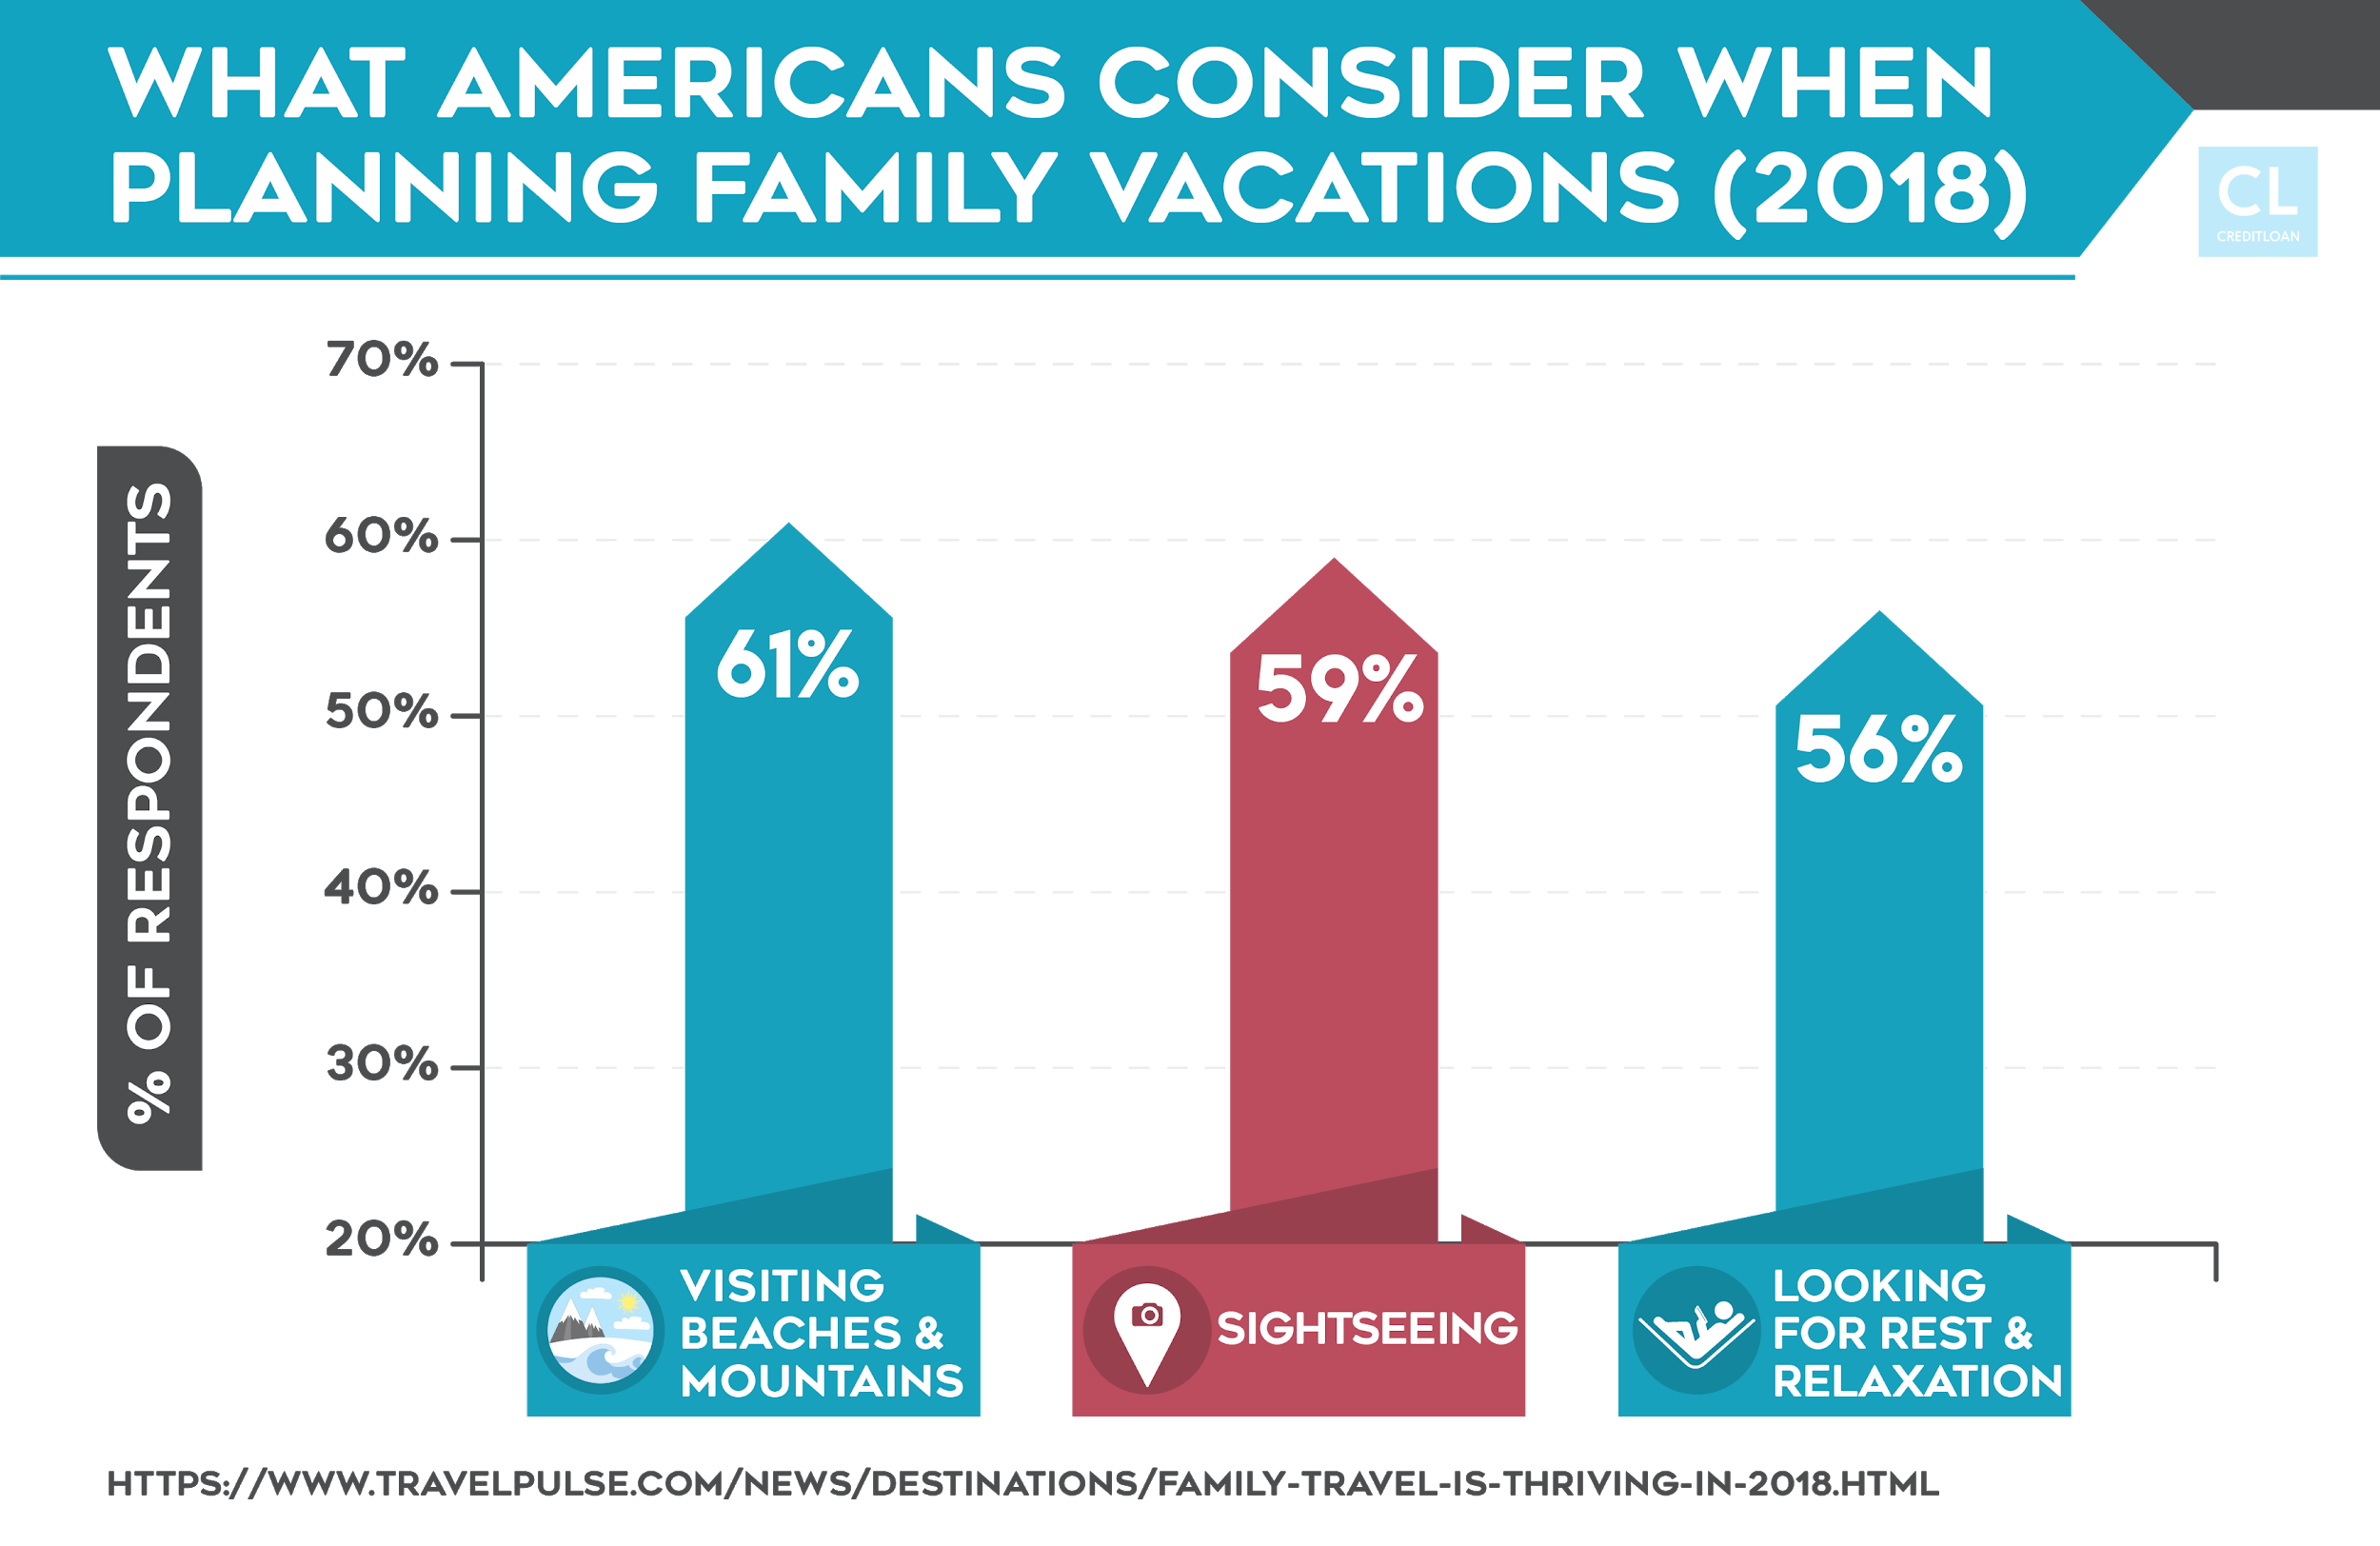 Survey: What Americans Consider When Planning Family Vacations